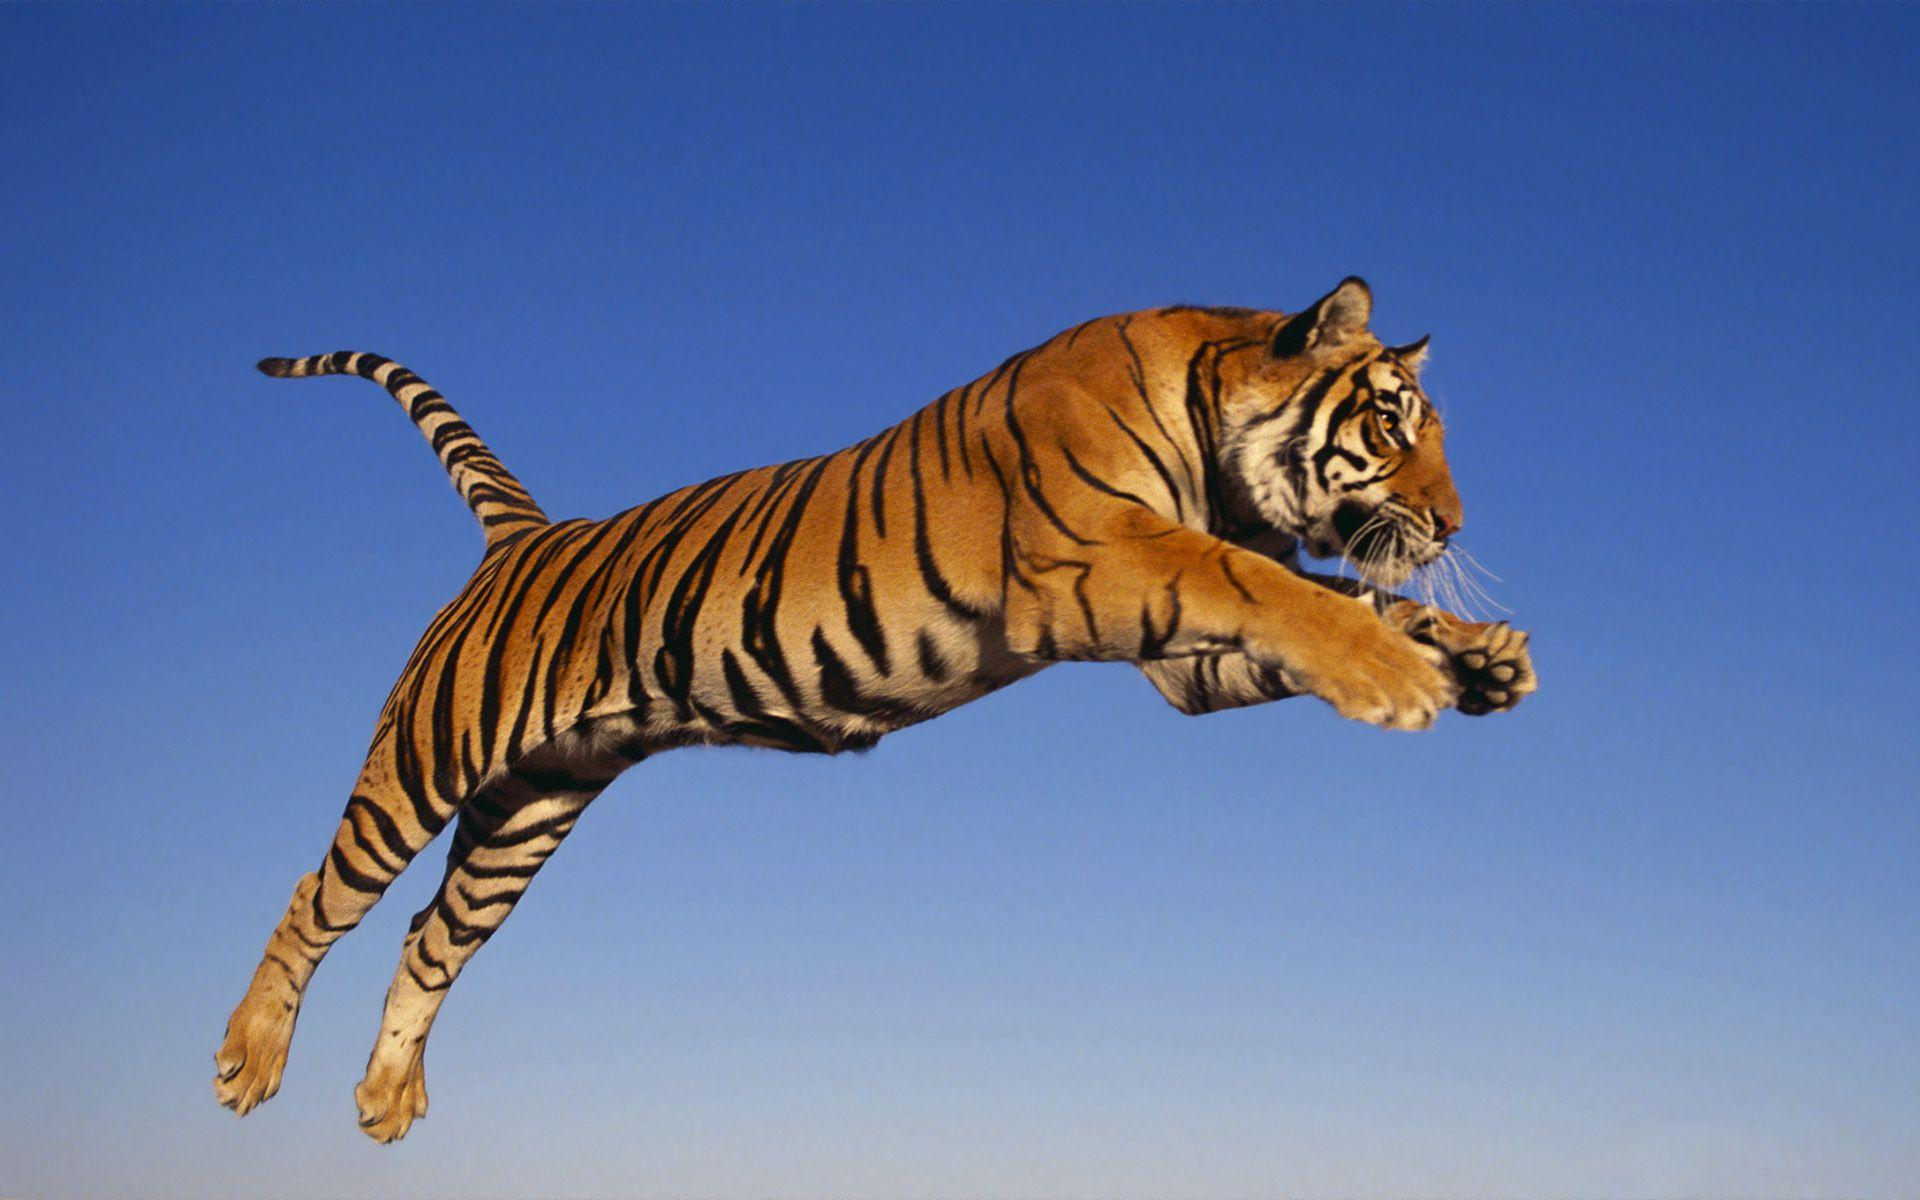 Jumping Tiger Wallpaper HD #10860 Wallpaper | Cool Walldiskpaper.com